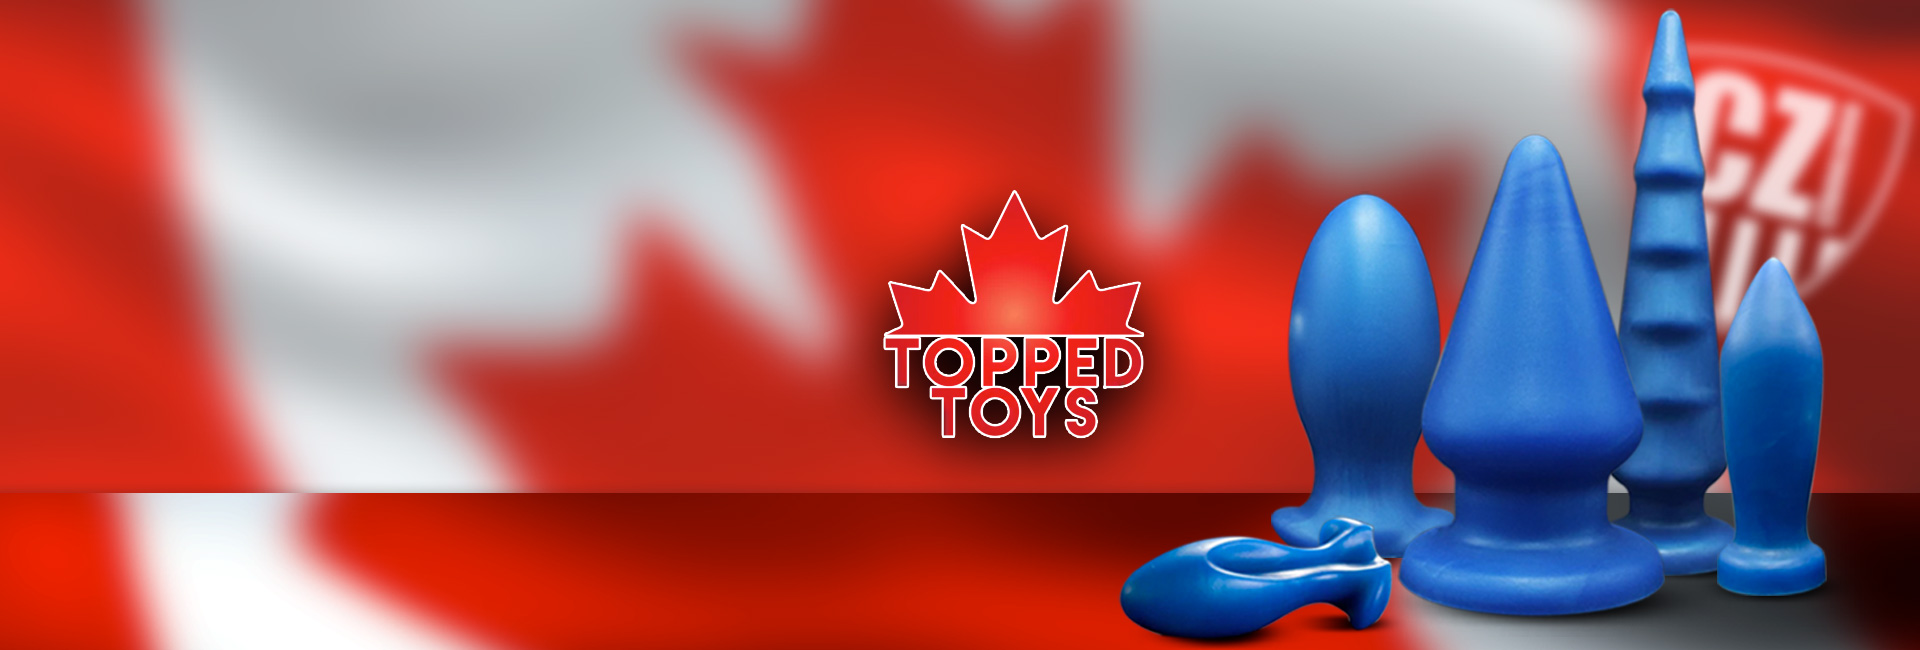 Topped Toys at clonezone, the home of the UKs best gay sex toys